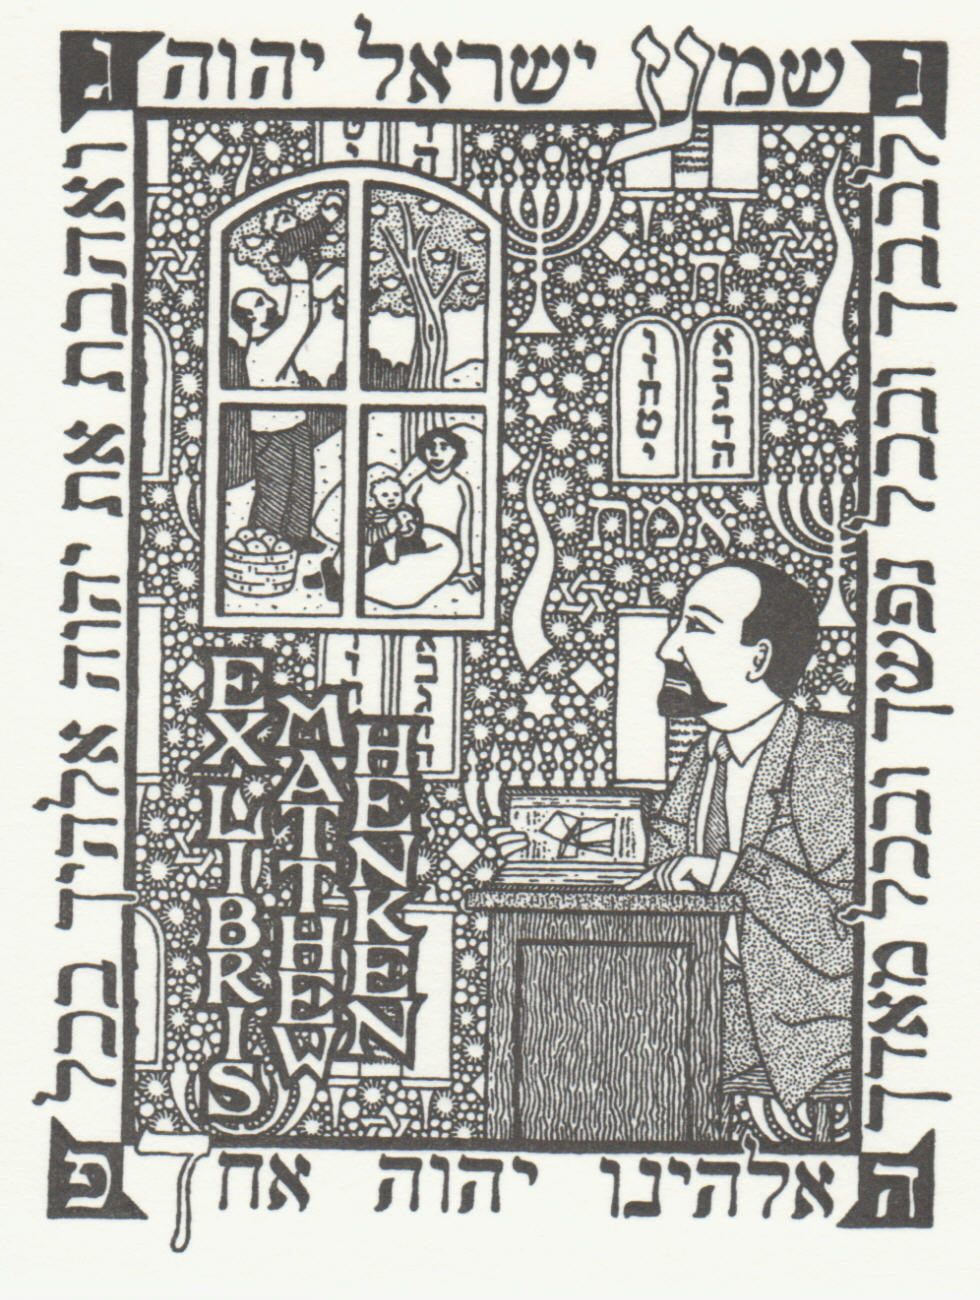 Confessions of a Bookplate Junkie: New Bookplate by Daniel Mitsui